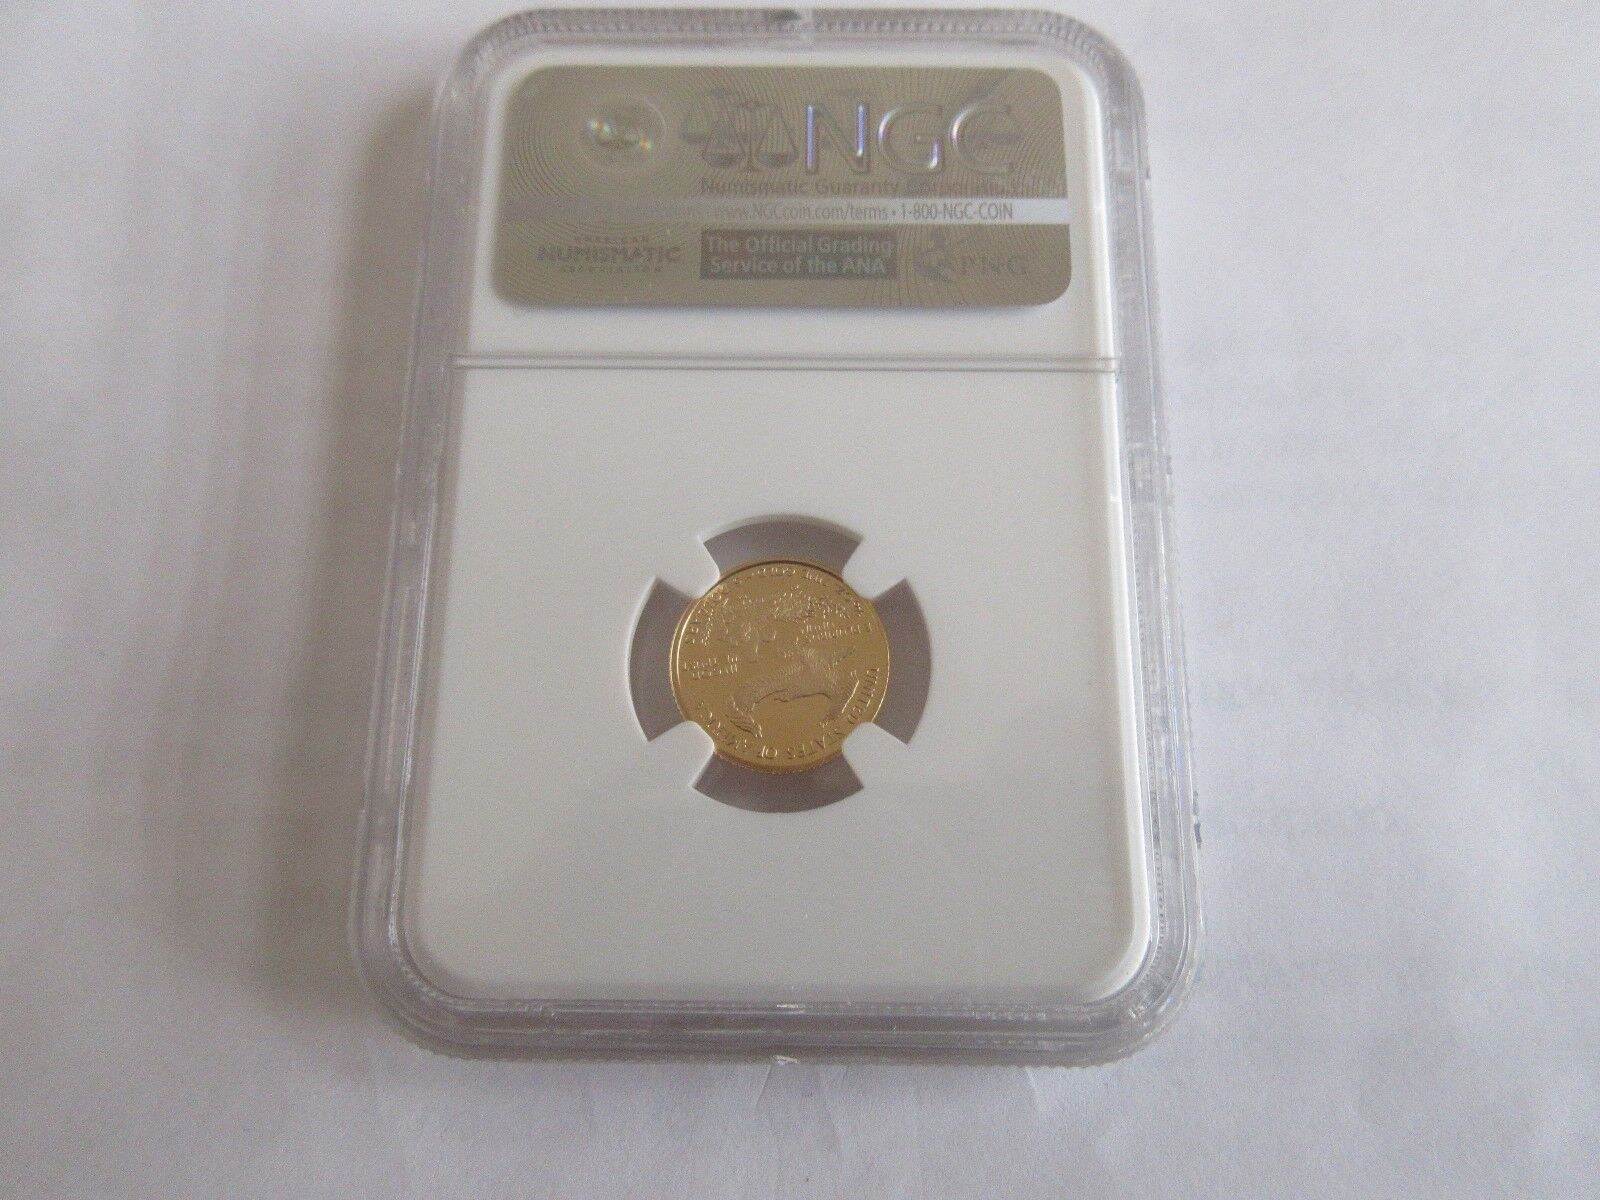 2006 W Gold Eagle G$5 NGC PF 70 Ultra Cameo